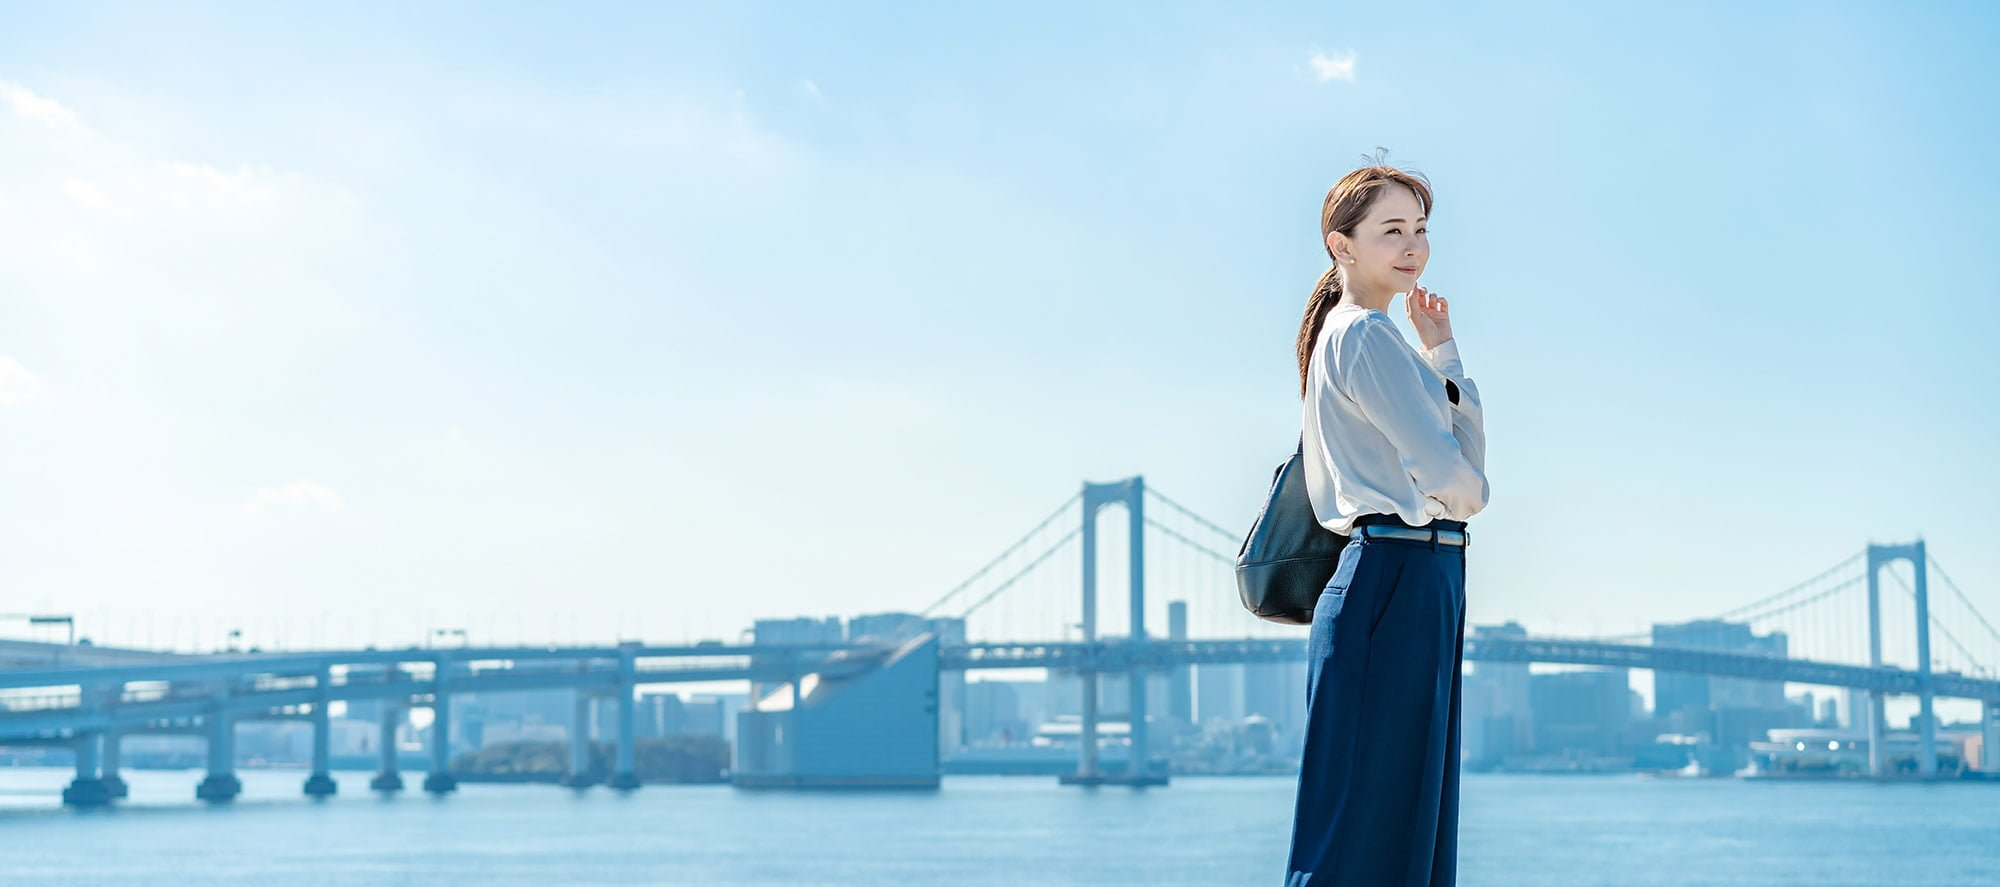 a girl with blue sky and bridge in backgrournd